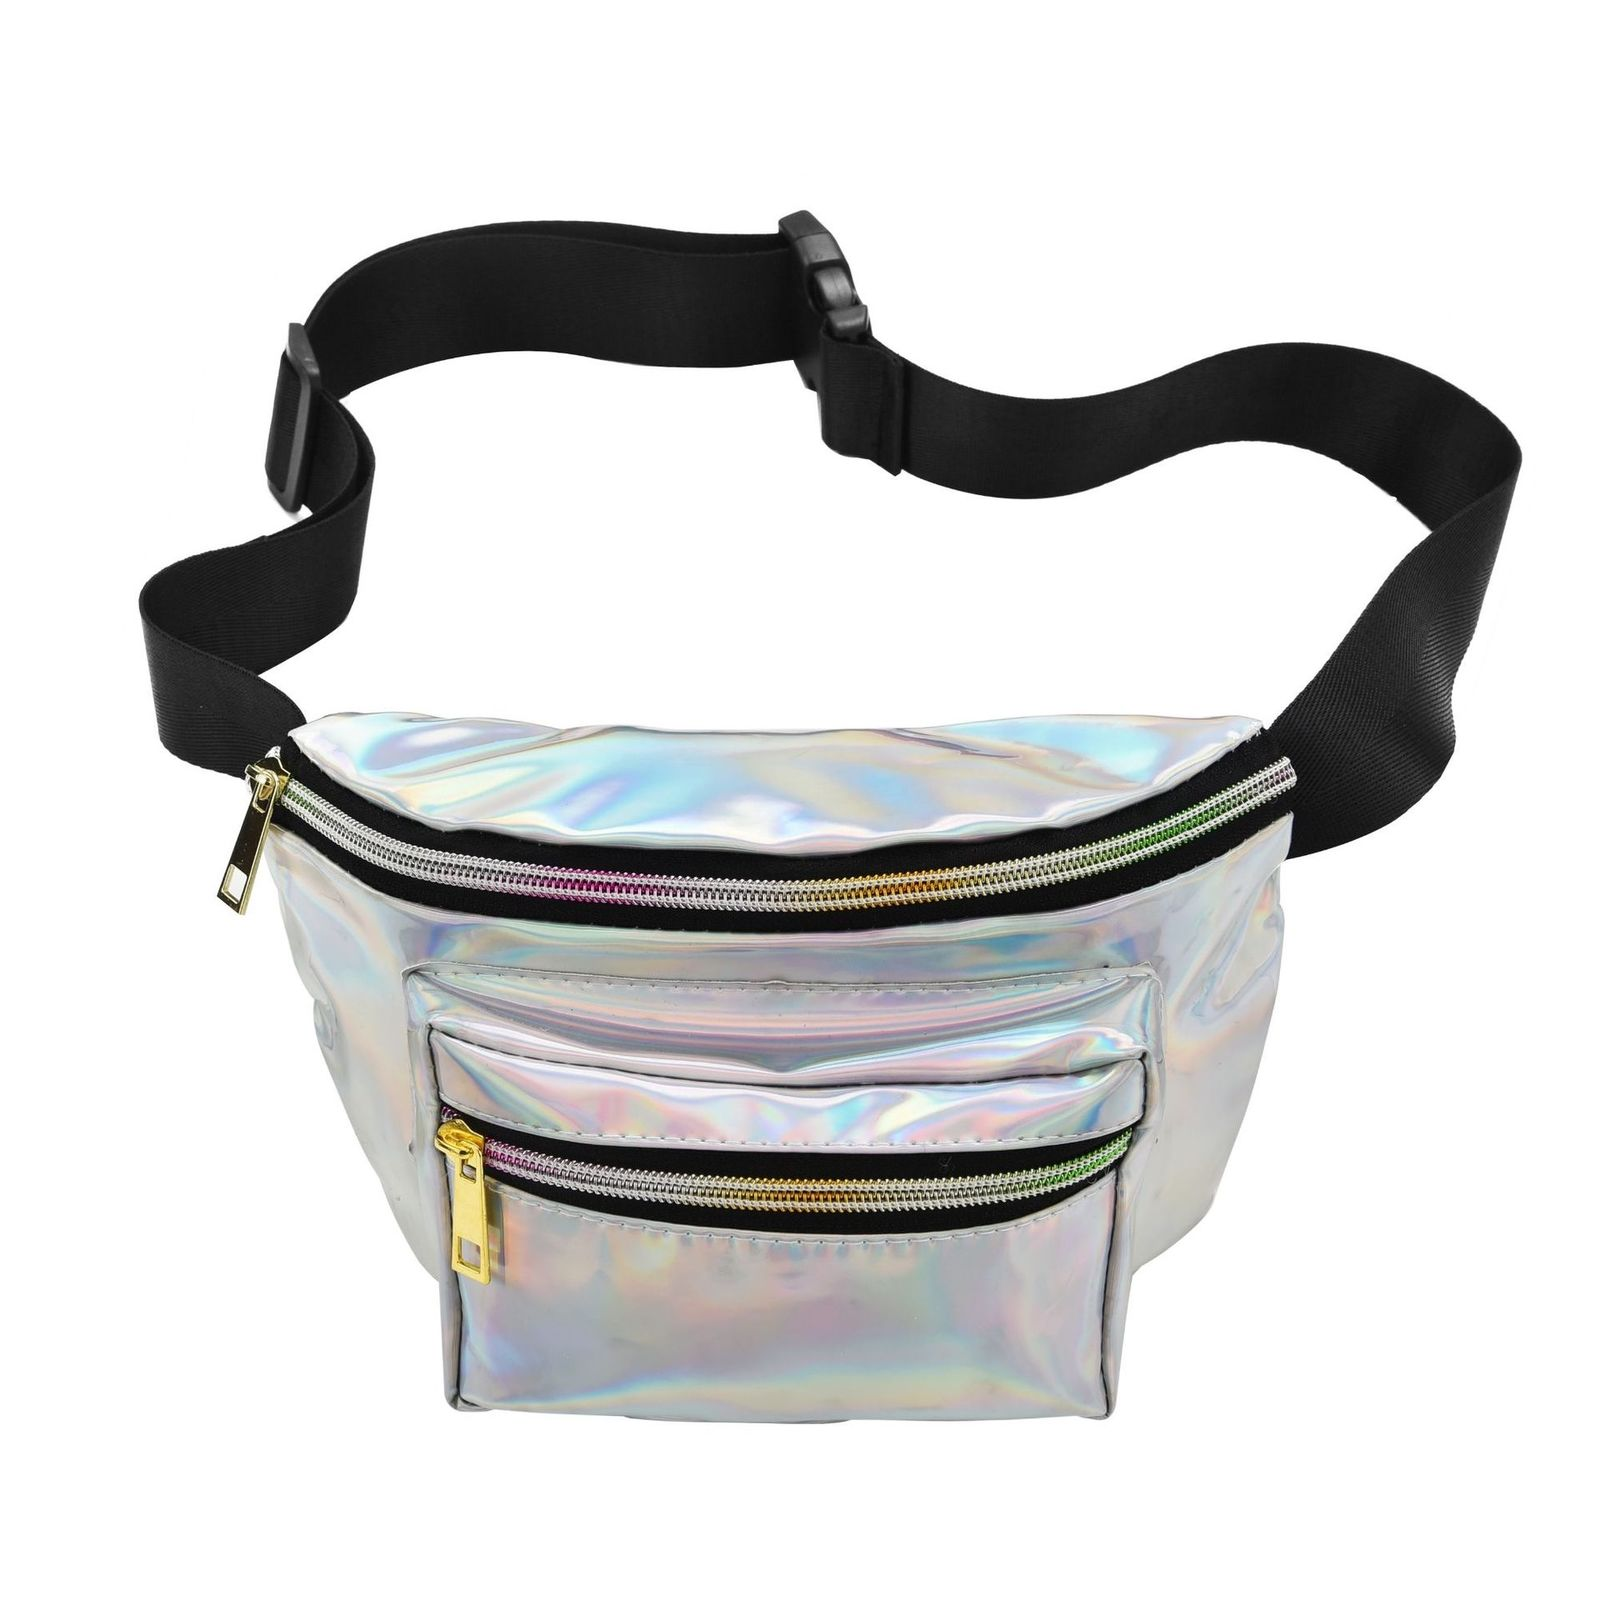 c6a908bbcb36 2018 New Holographic Fanny Pack For Women Laser Waist Packs Belt Bag Silver  Gold Pink Bum. 503.18 РУБ